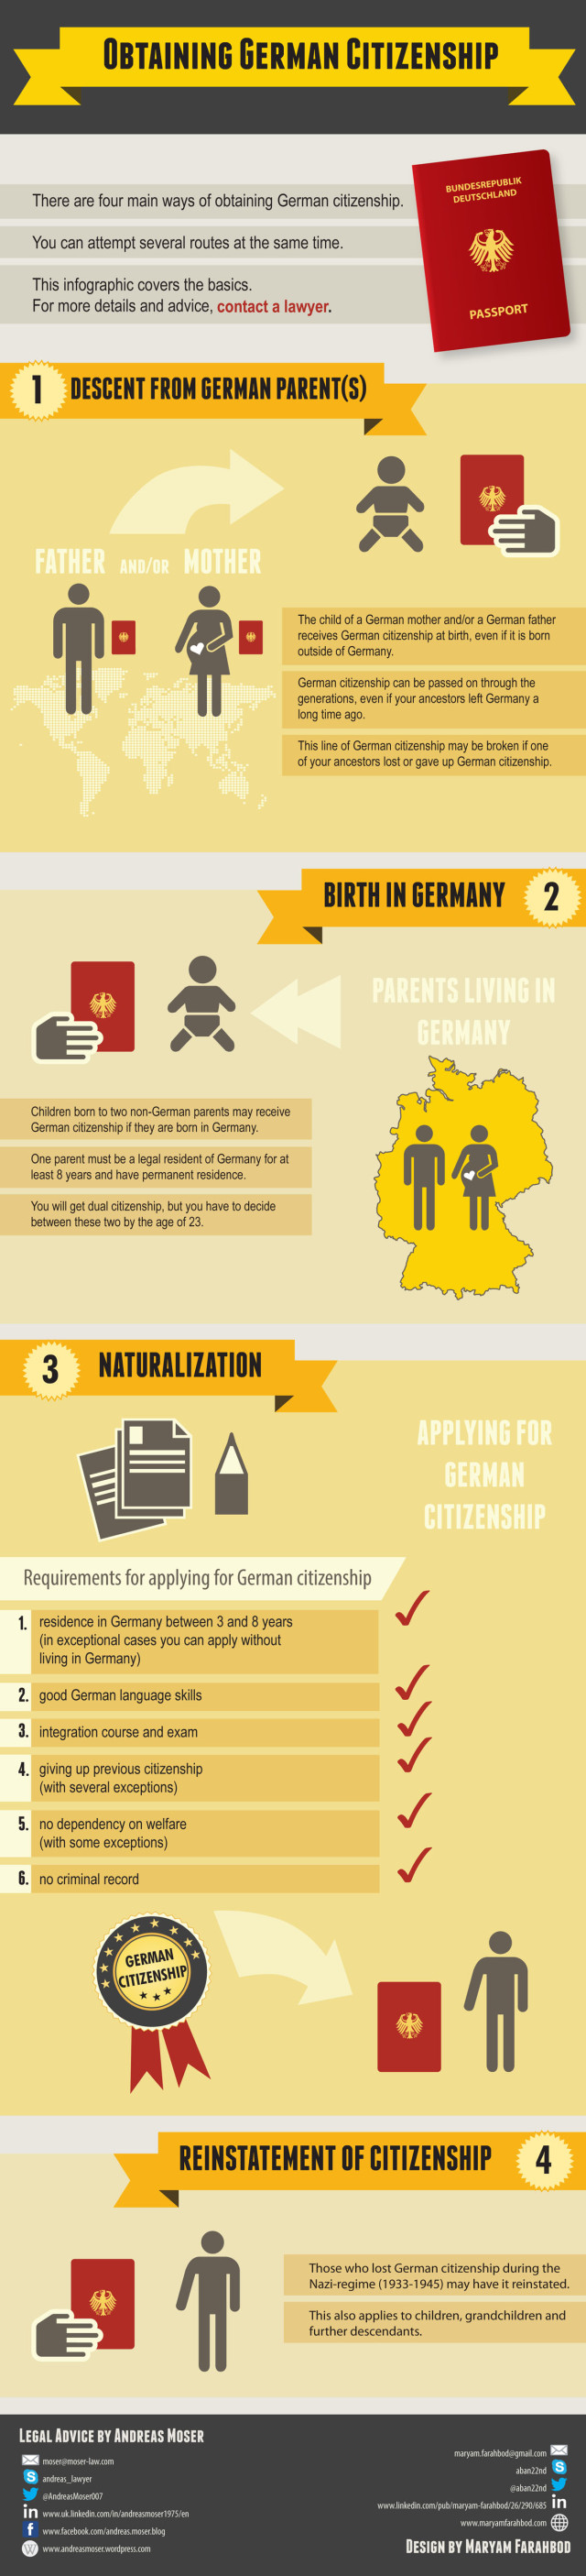 9. German Citizenship